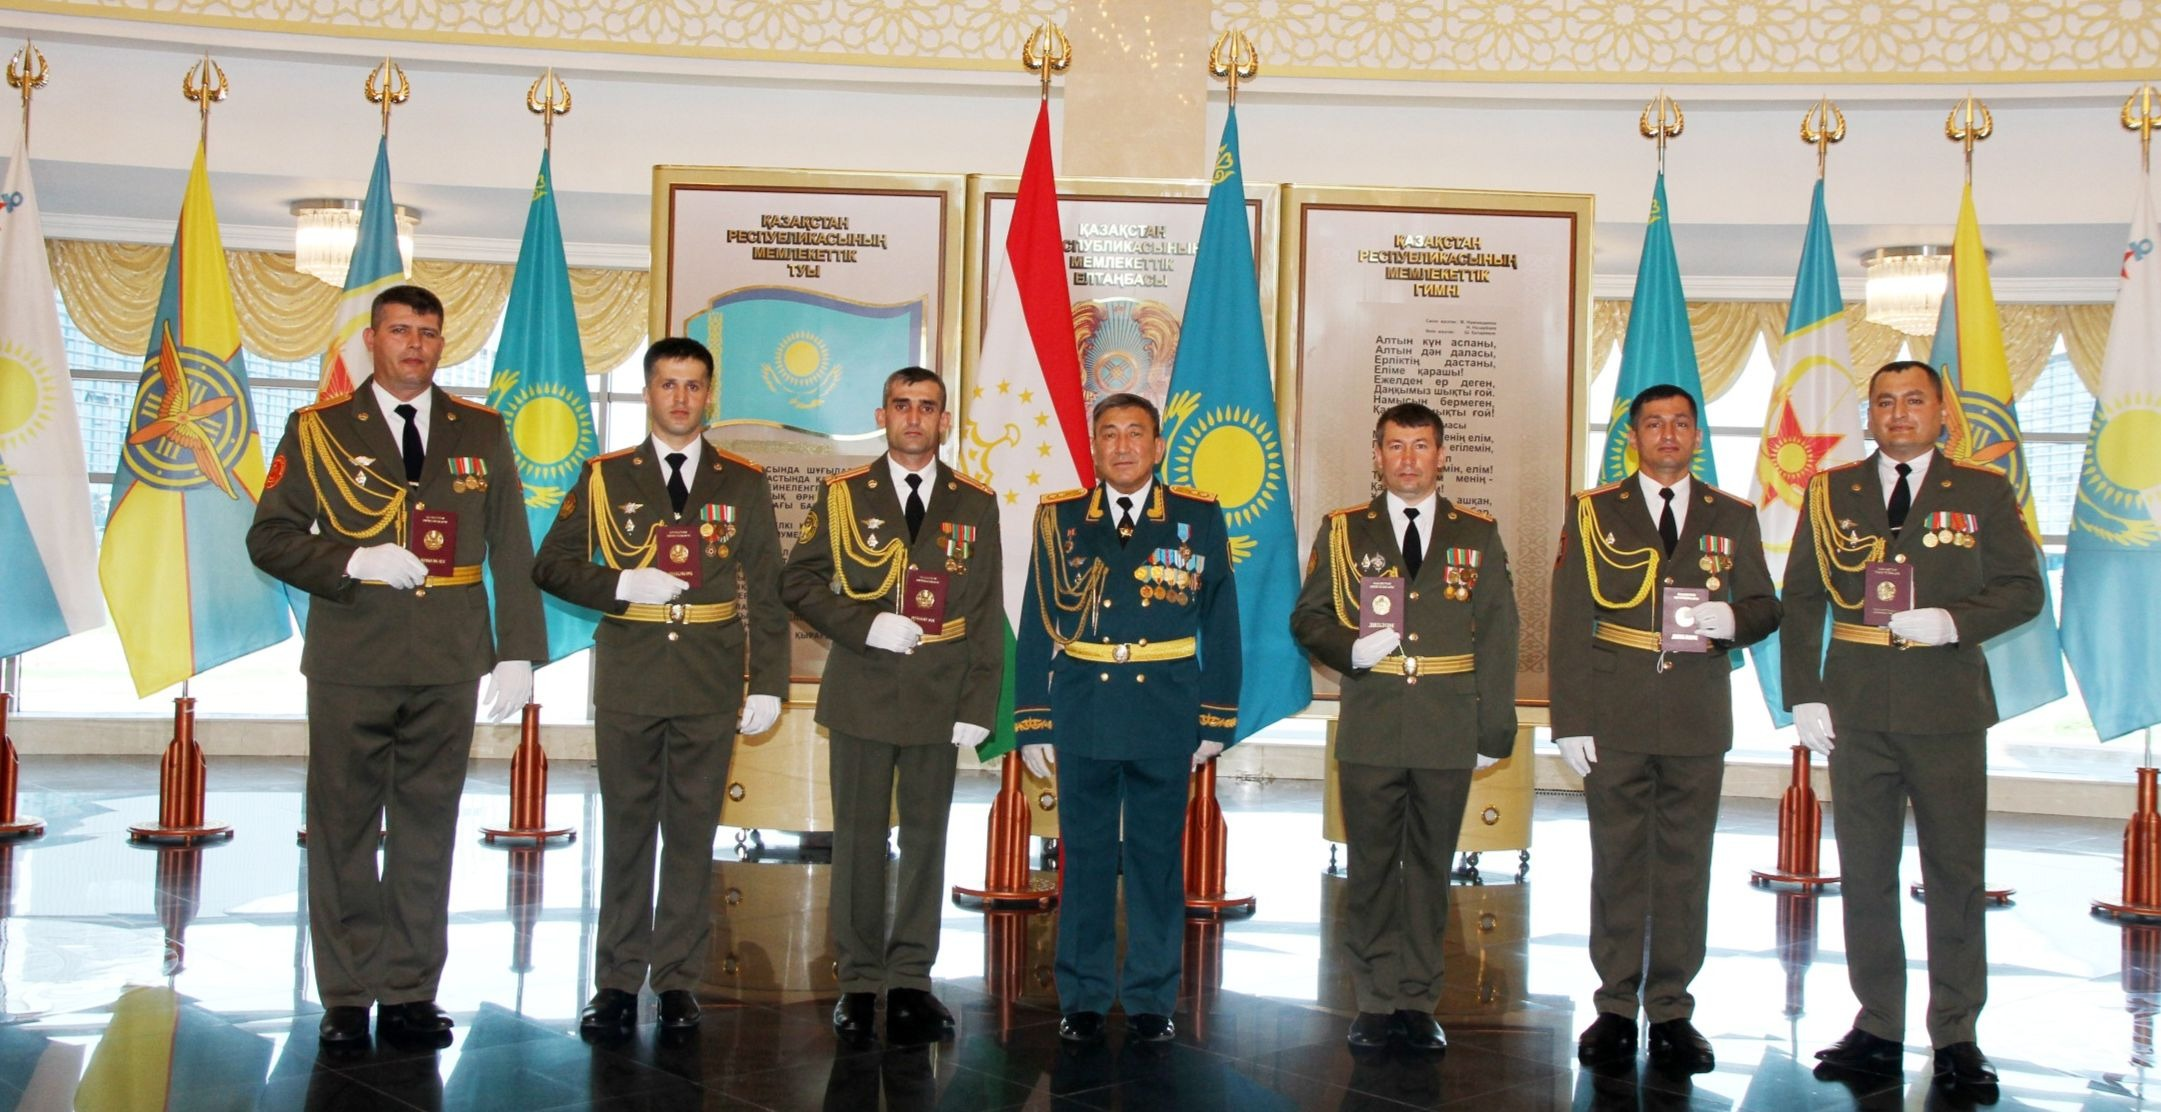 A solemn graduation of foreign officers took place at the National Defence University